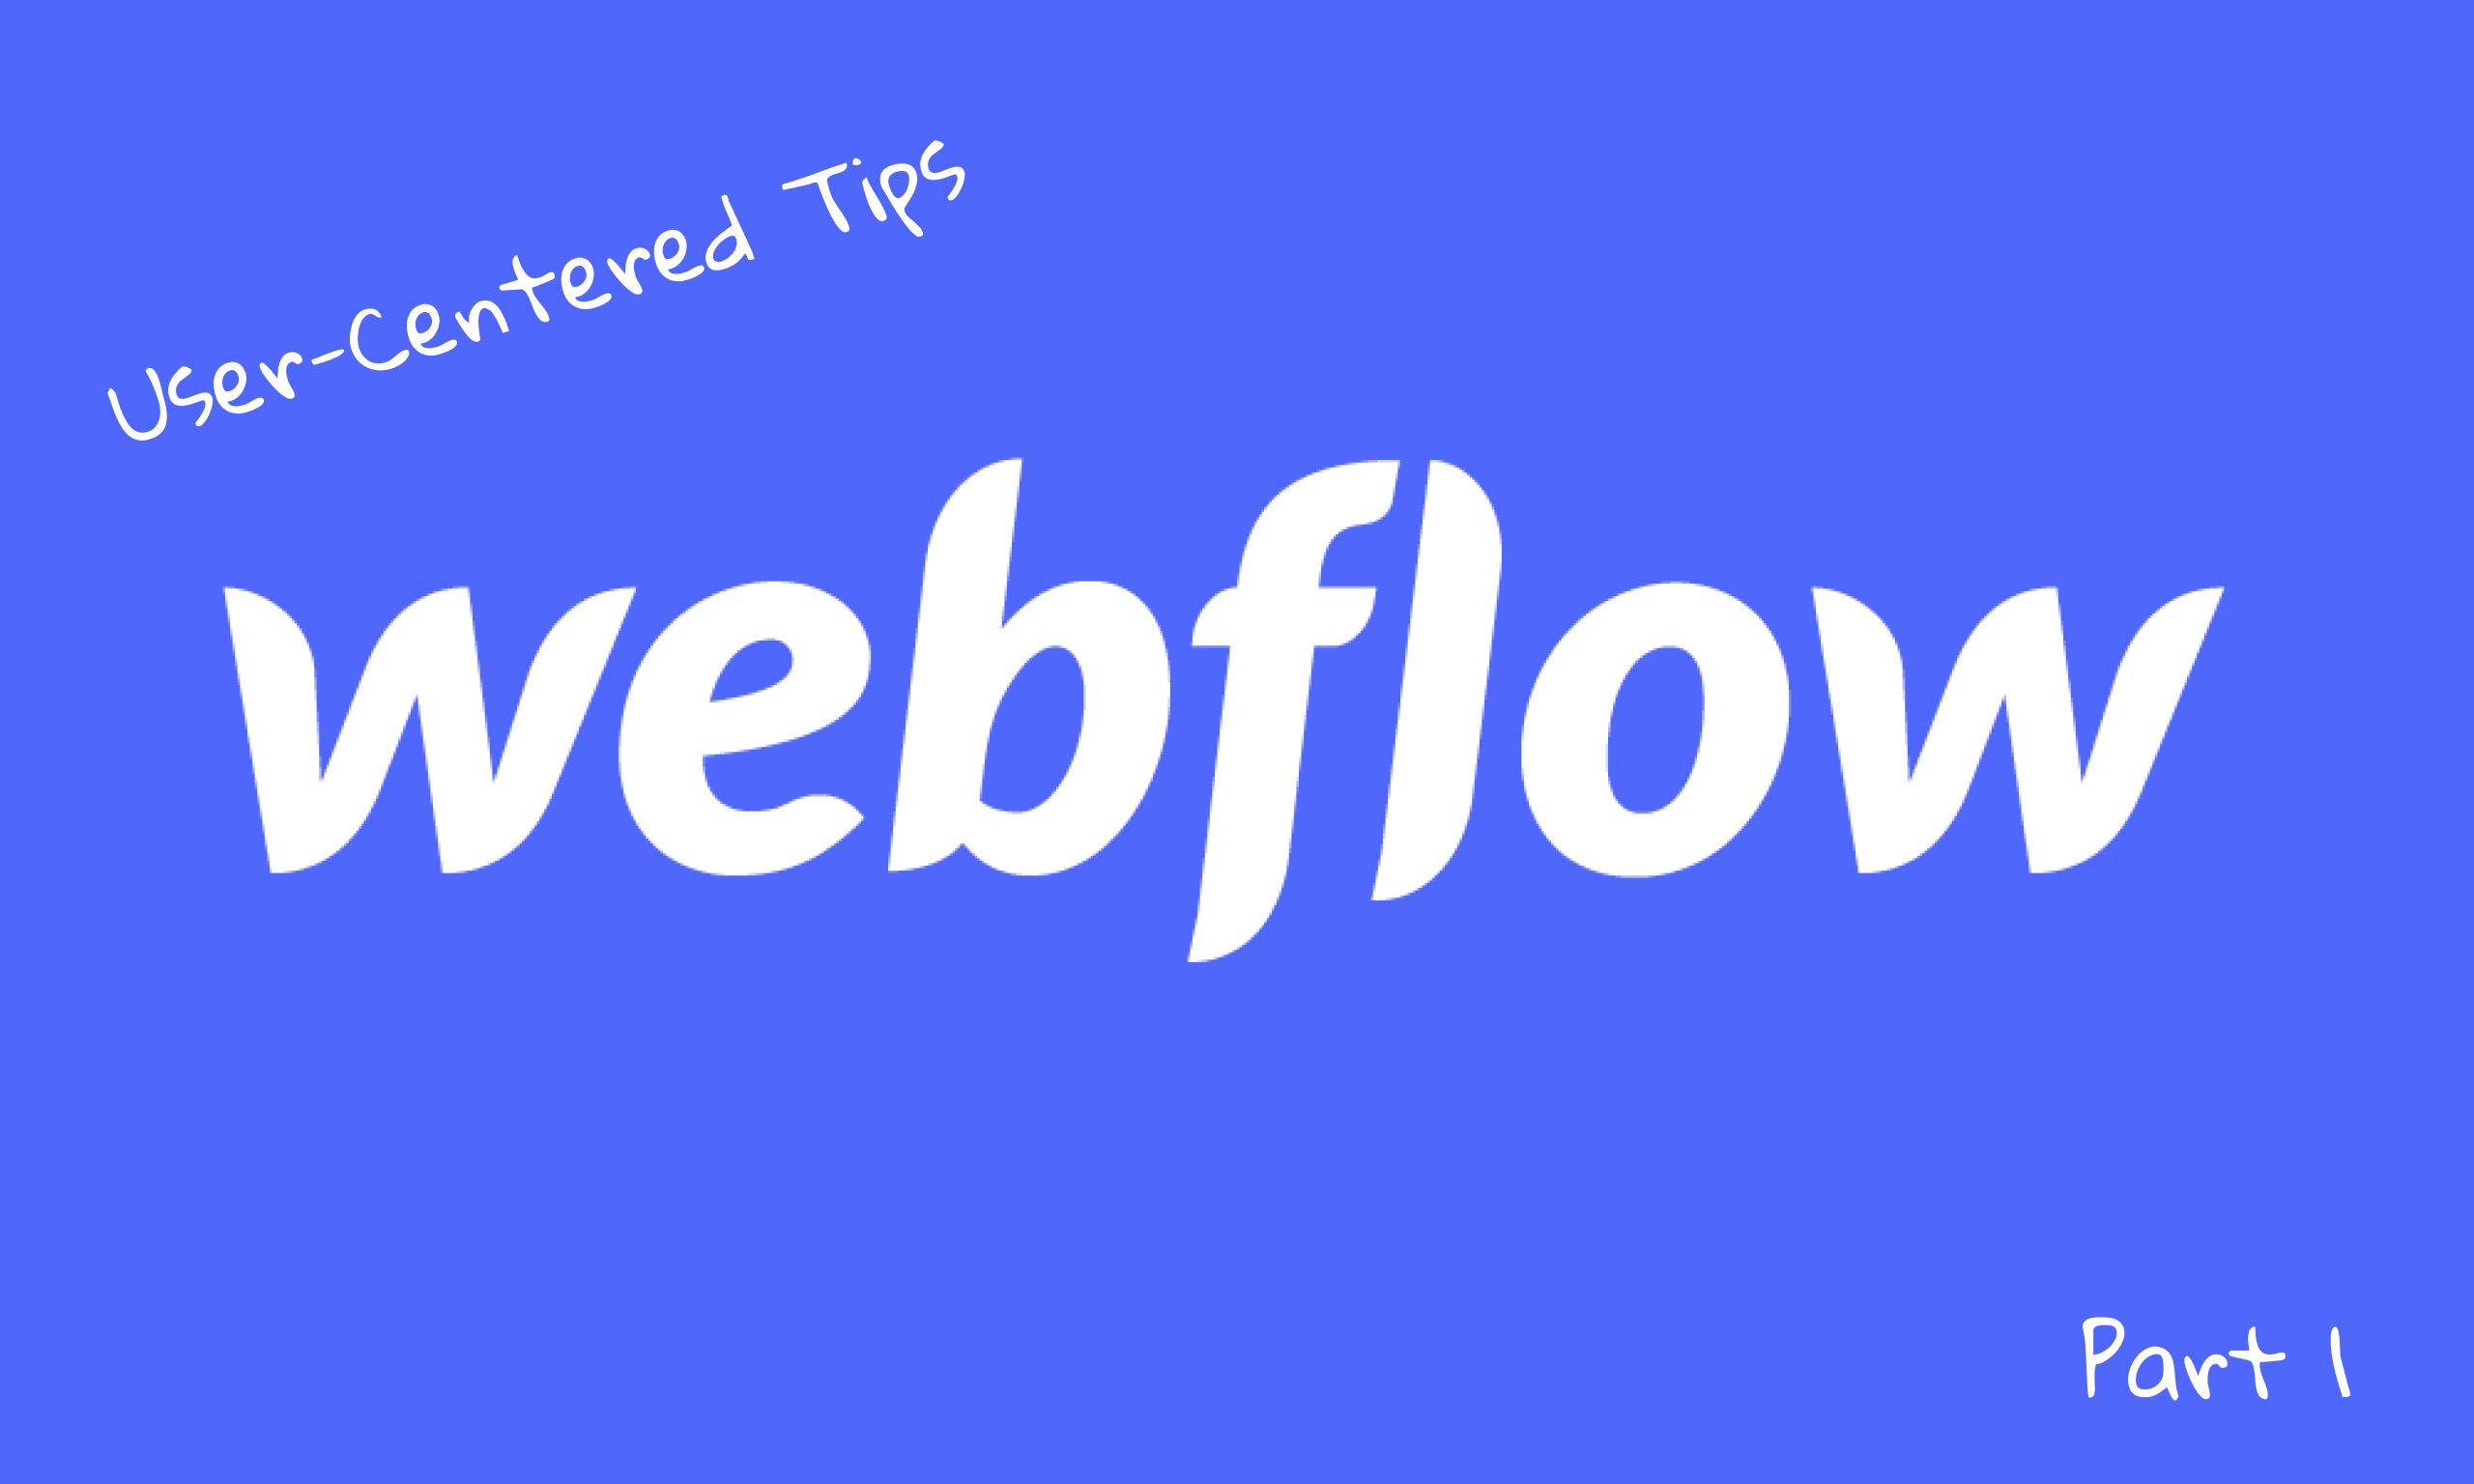 "The Webflow logo against a blue background with the text ""User-Centered Tips"" at the top and ""Part 1"" in the bottom corner."